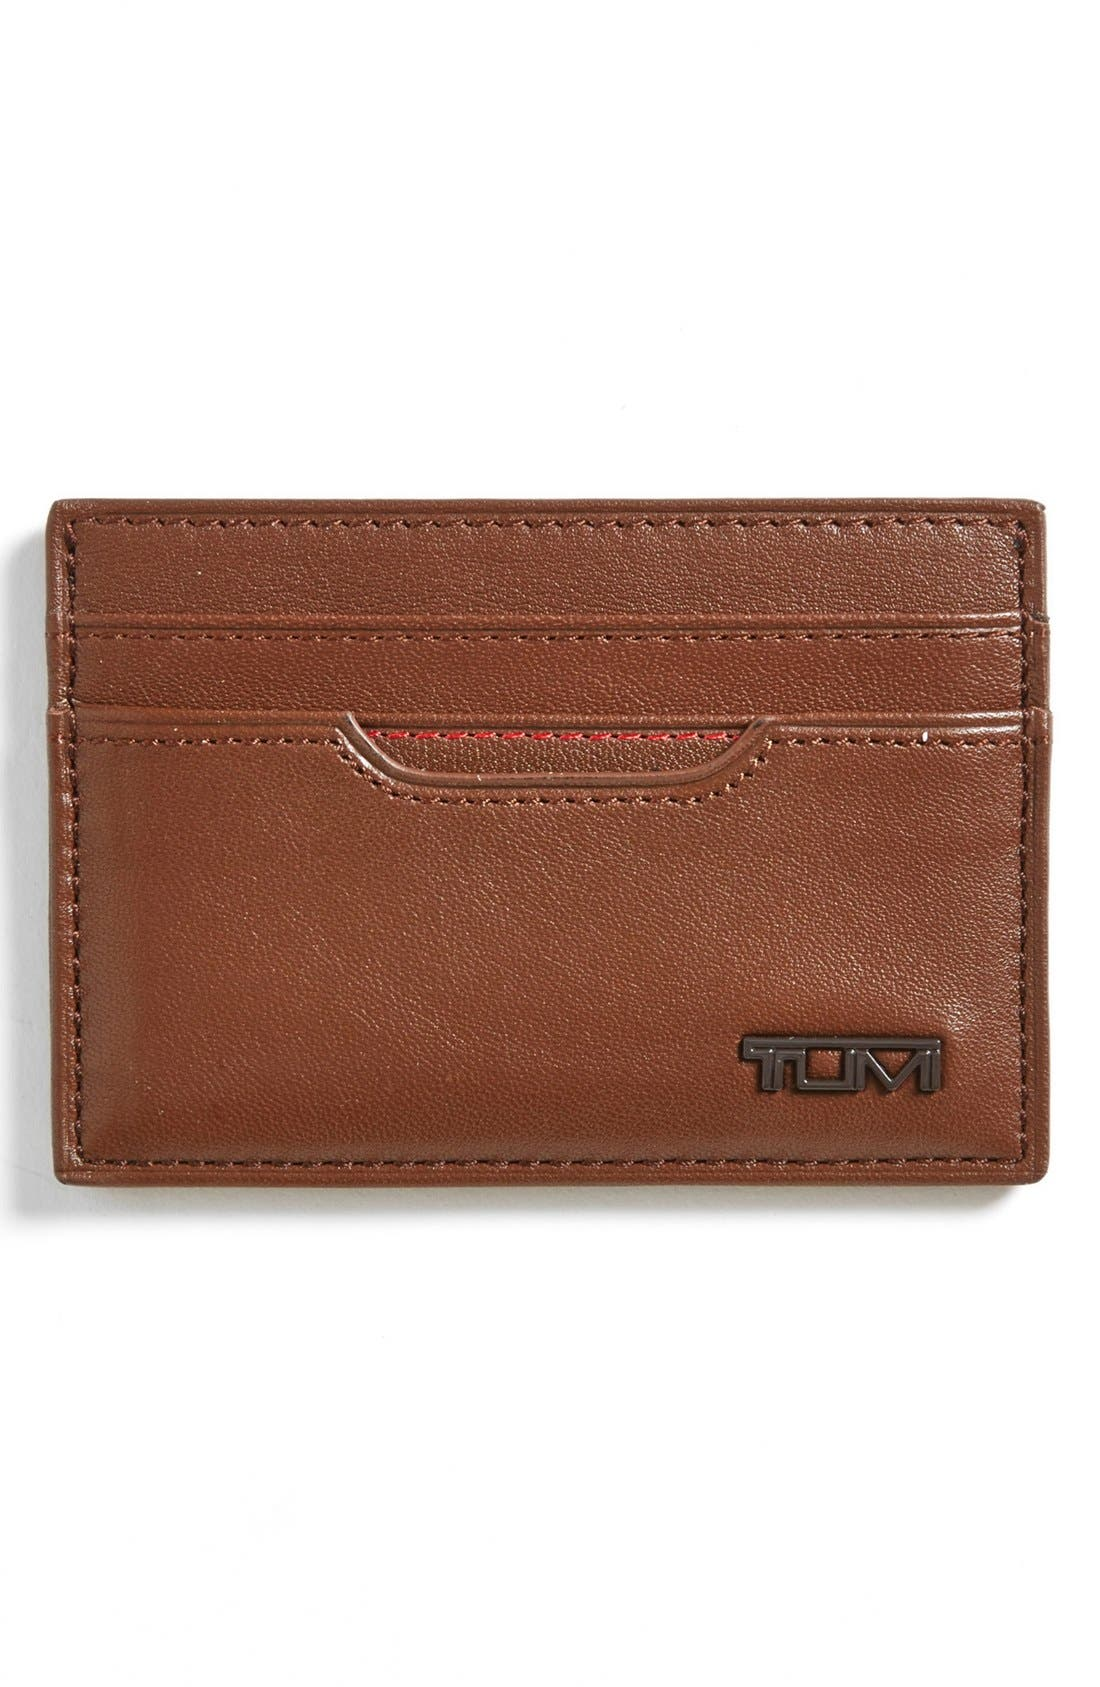 Alternate Image 1 Selected - Tumi 'Slim' Card Case ID Wallet